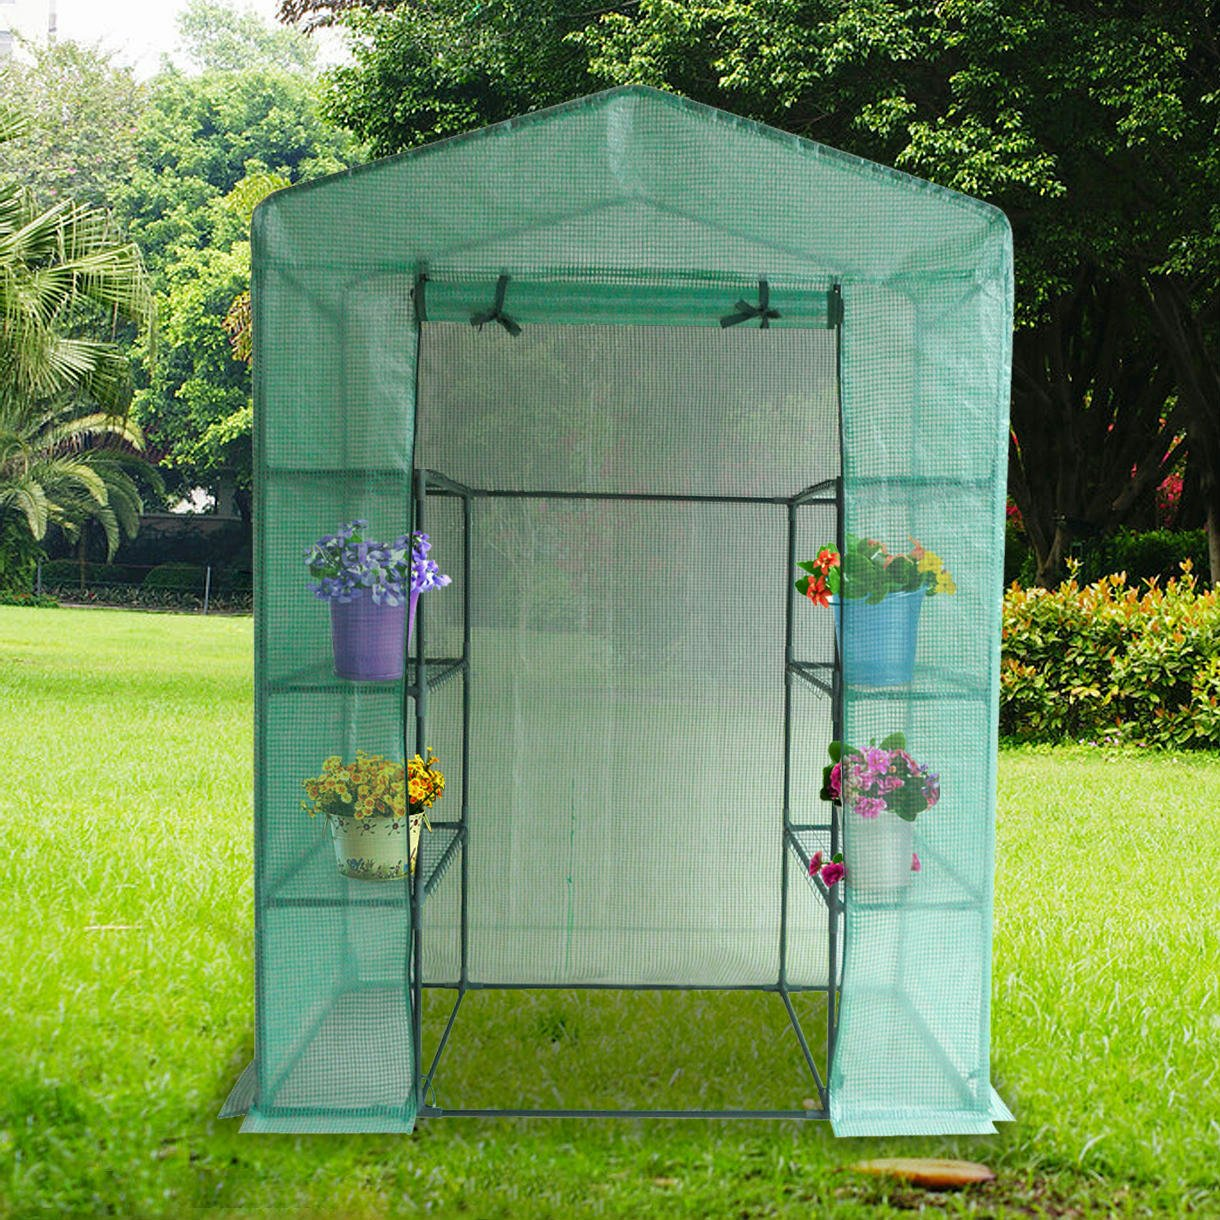 Quictent Mini Walk-in Greenhouse 4 tiers 6 Shelves Portable Small Green Grow Garden plant Plastic House 78''x56''x30'' by Quictent